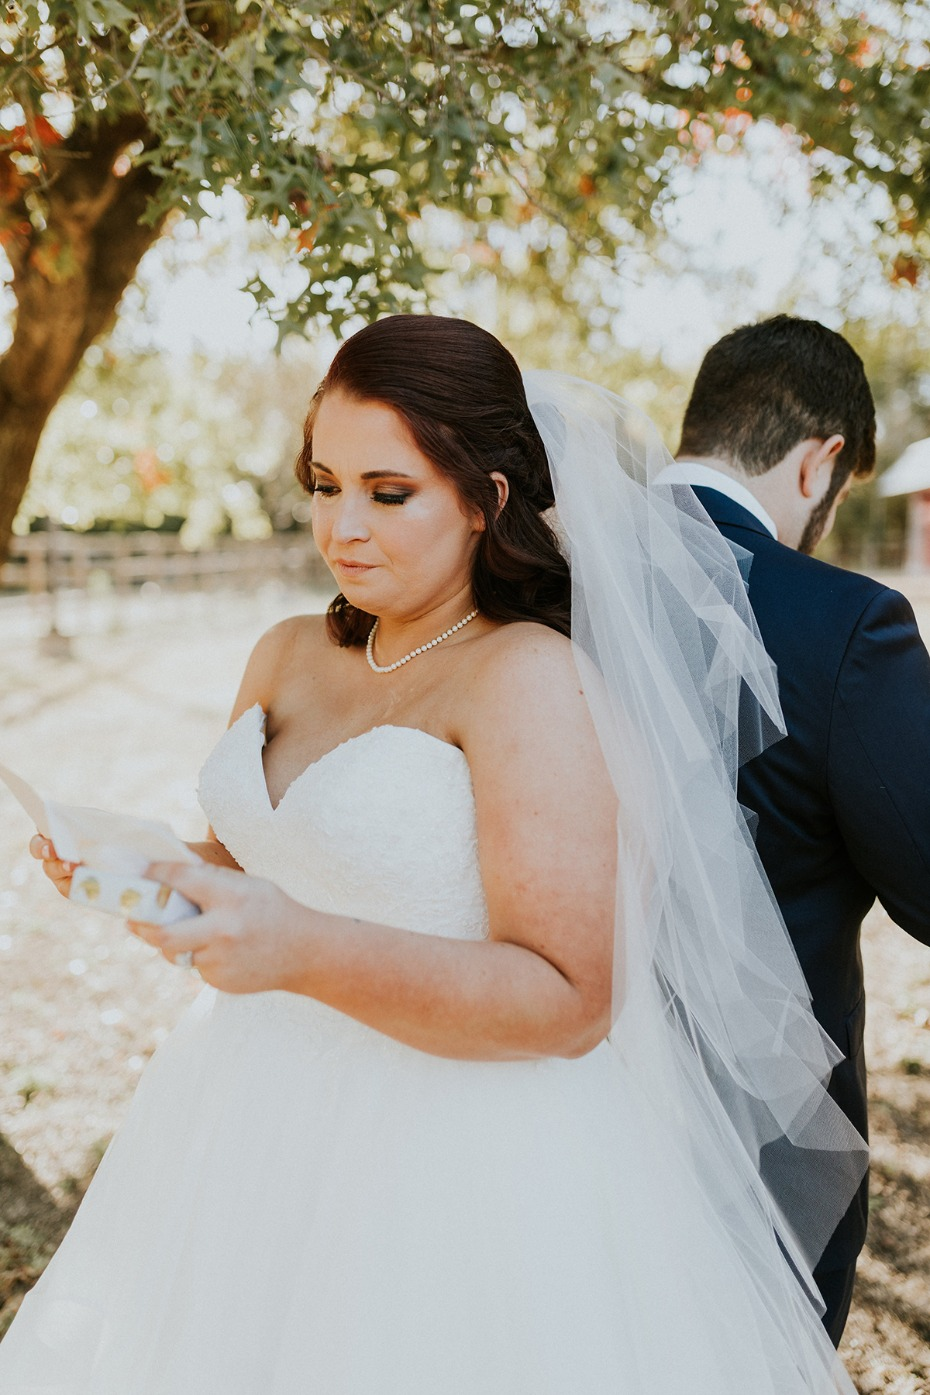 trading wedding day notes